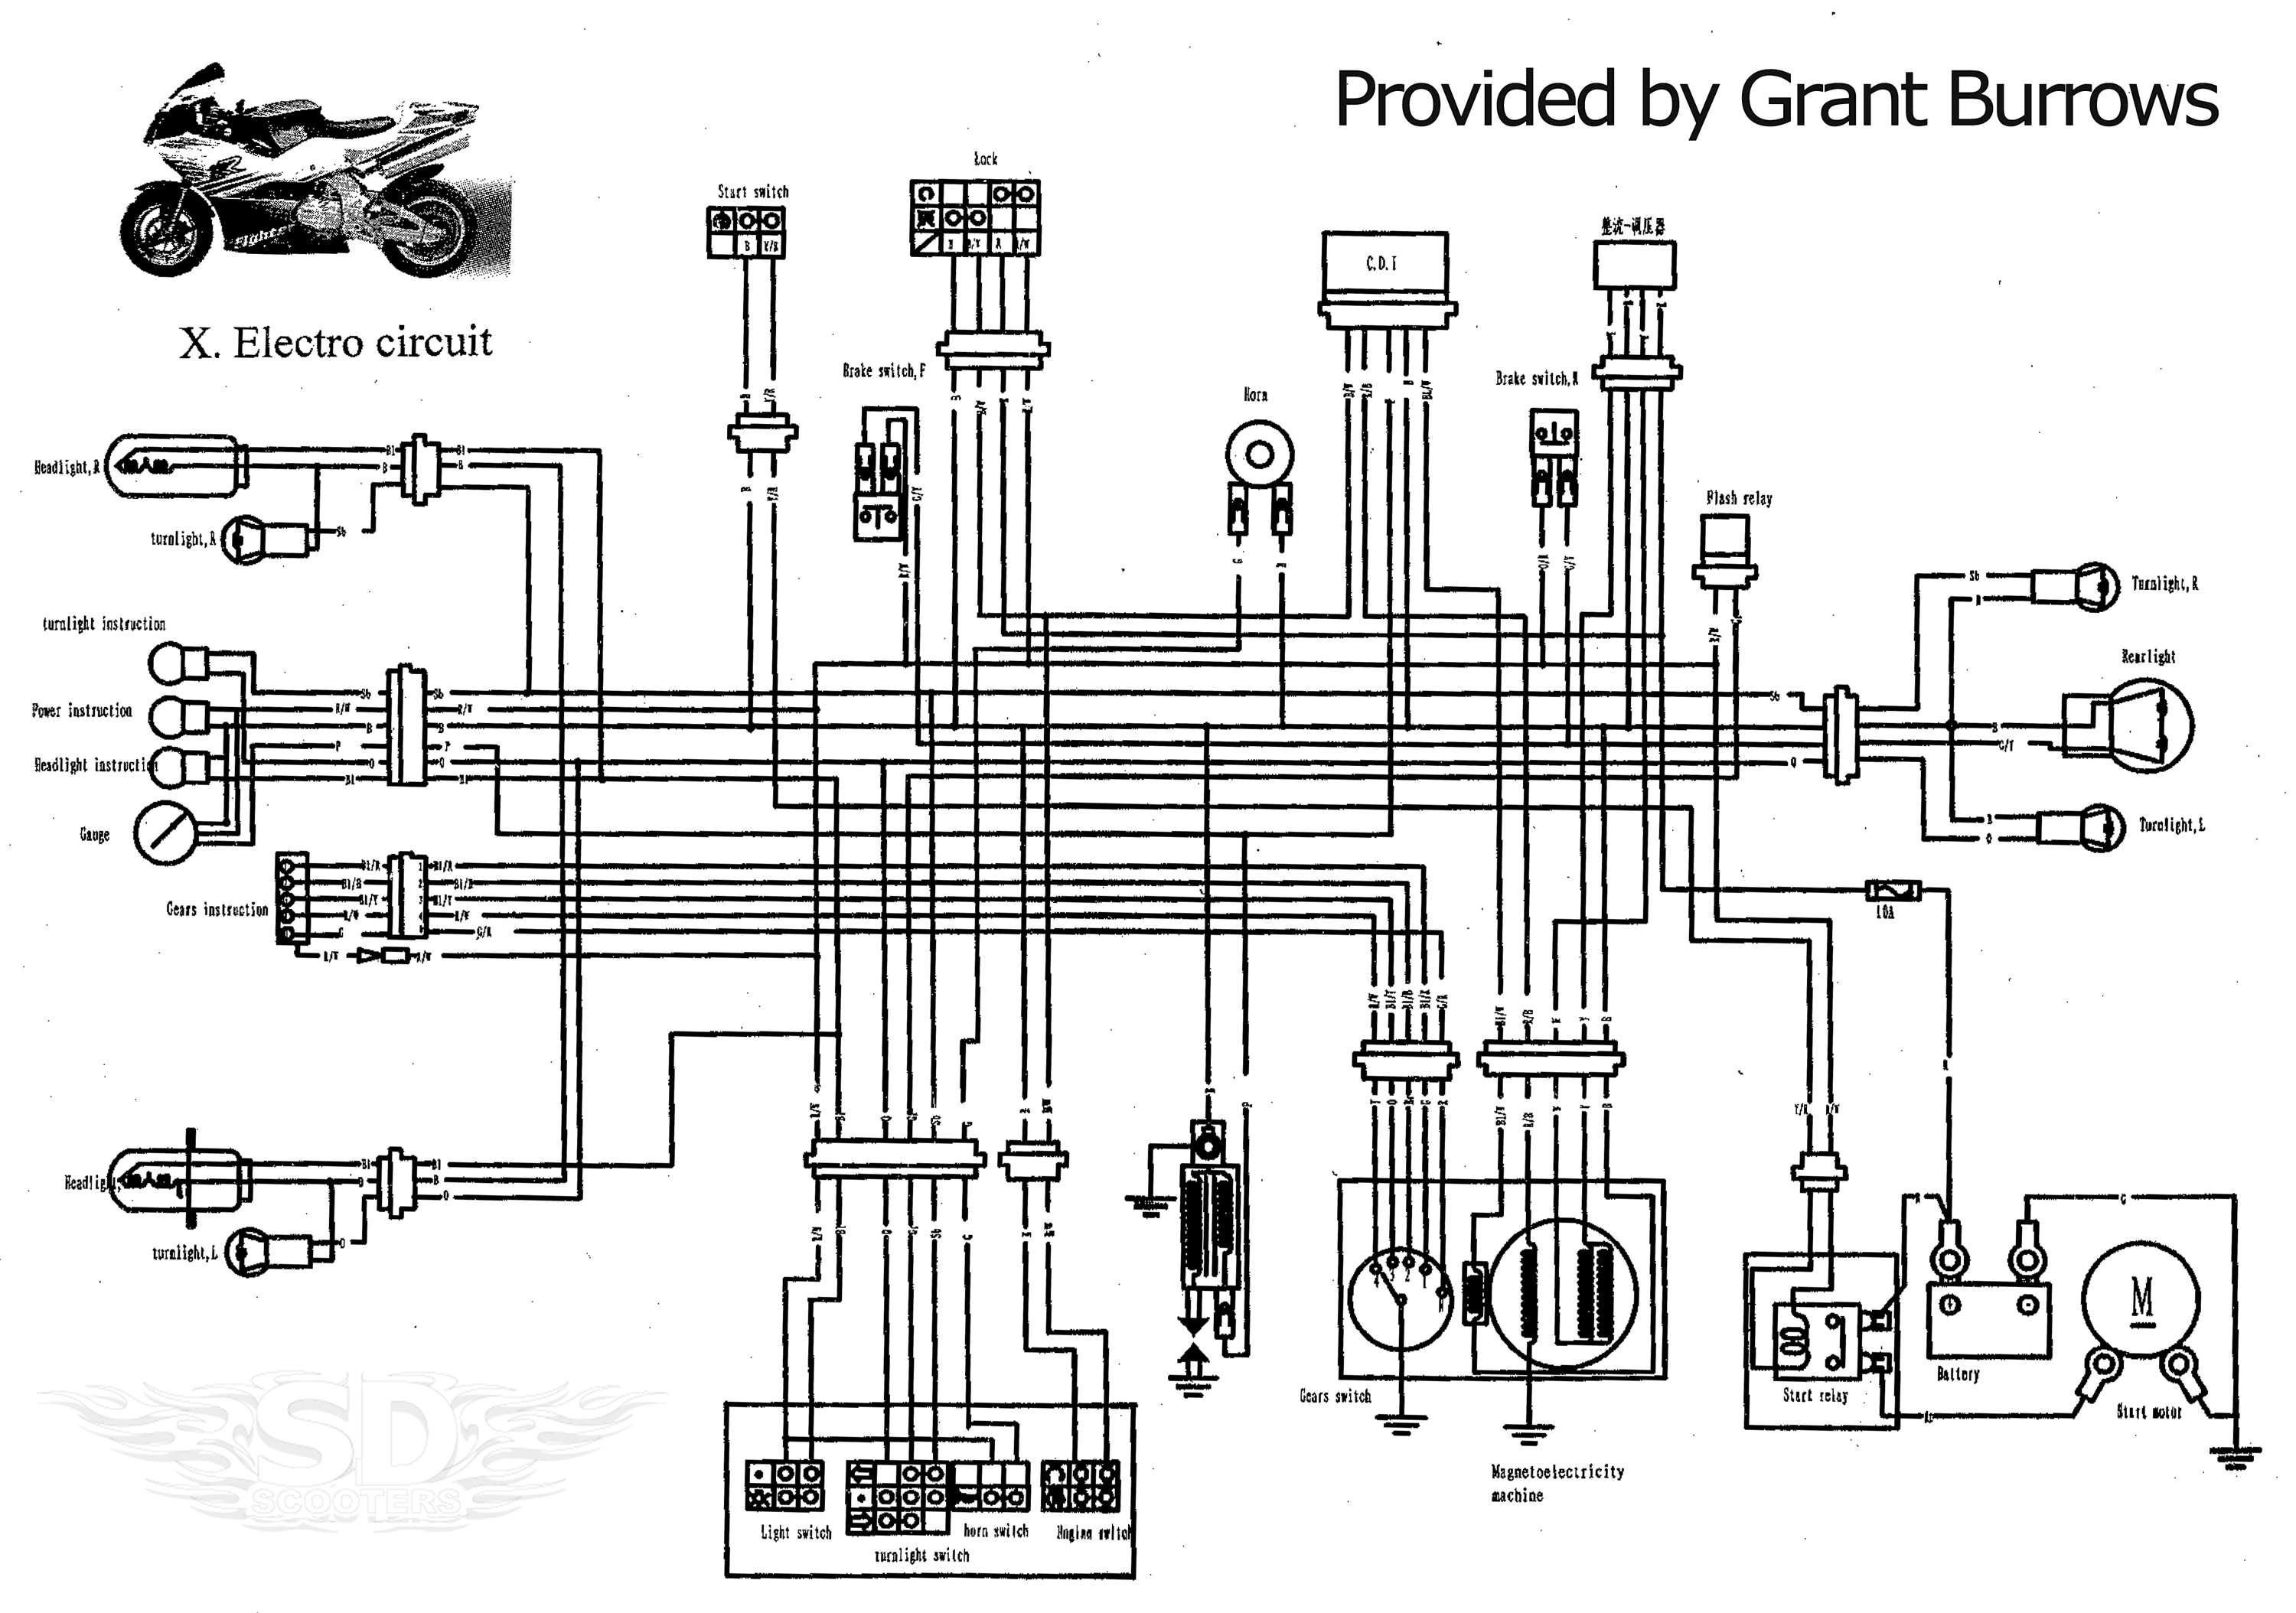 New Wiring Harness Schematic Diagram Wiringdiagram Diagramming Diagramm Visuals Visualisation Graphical Check More At Ht Pocket Bike Bike Engine Diagram